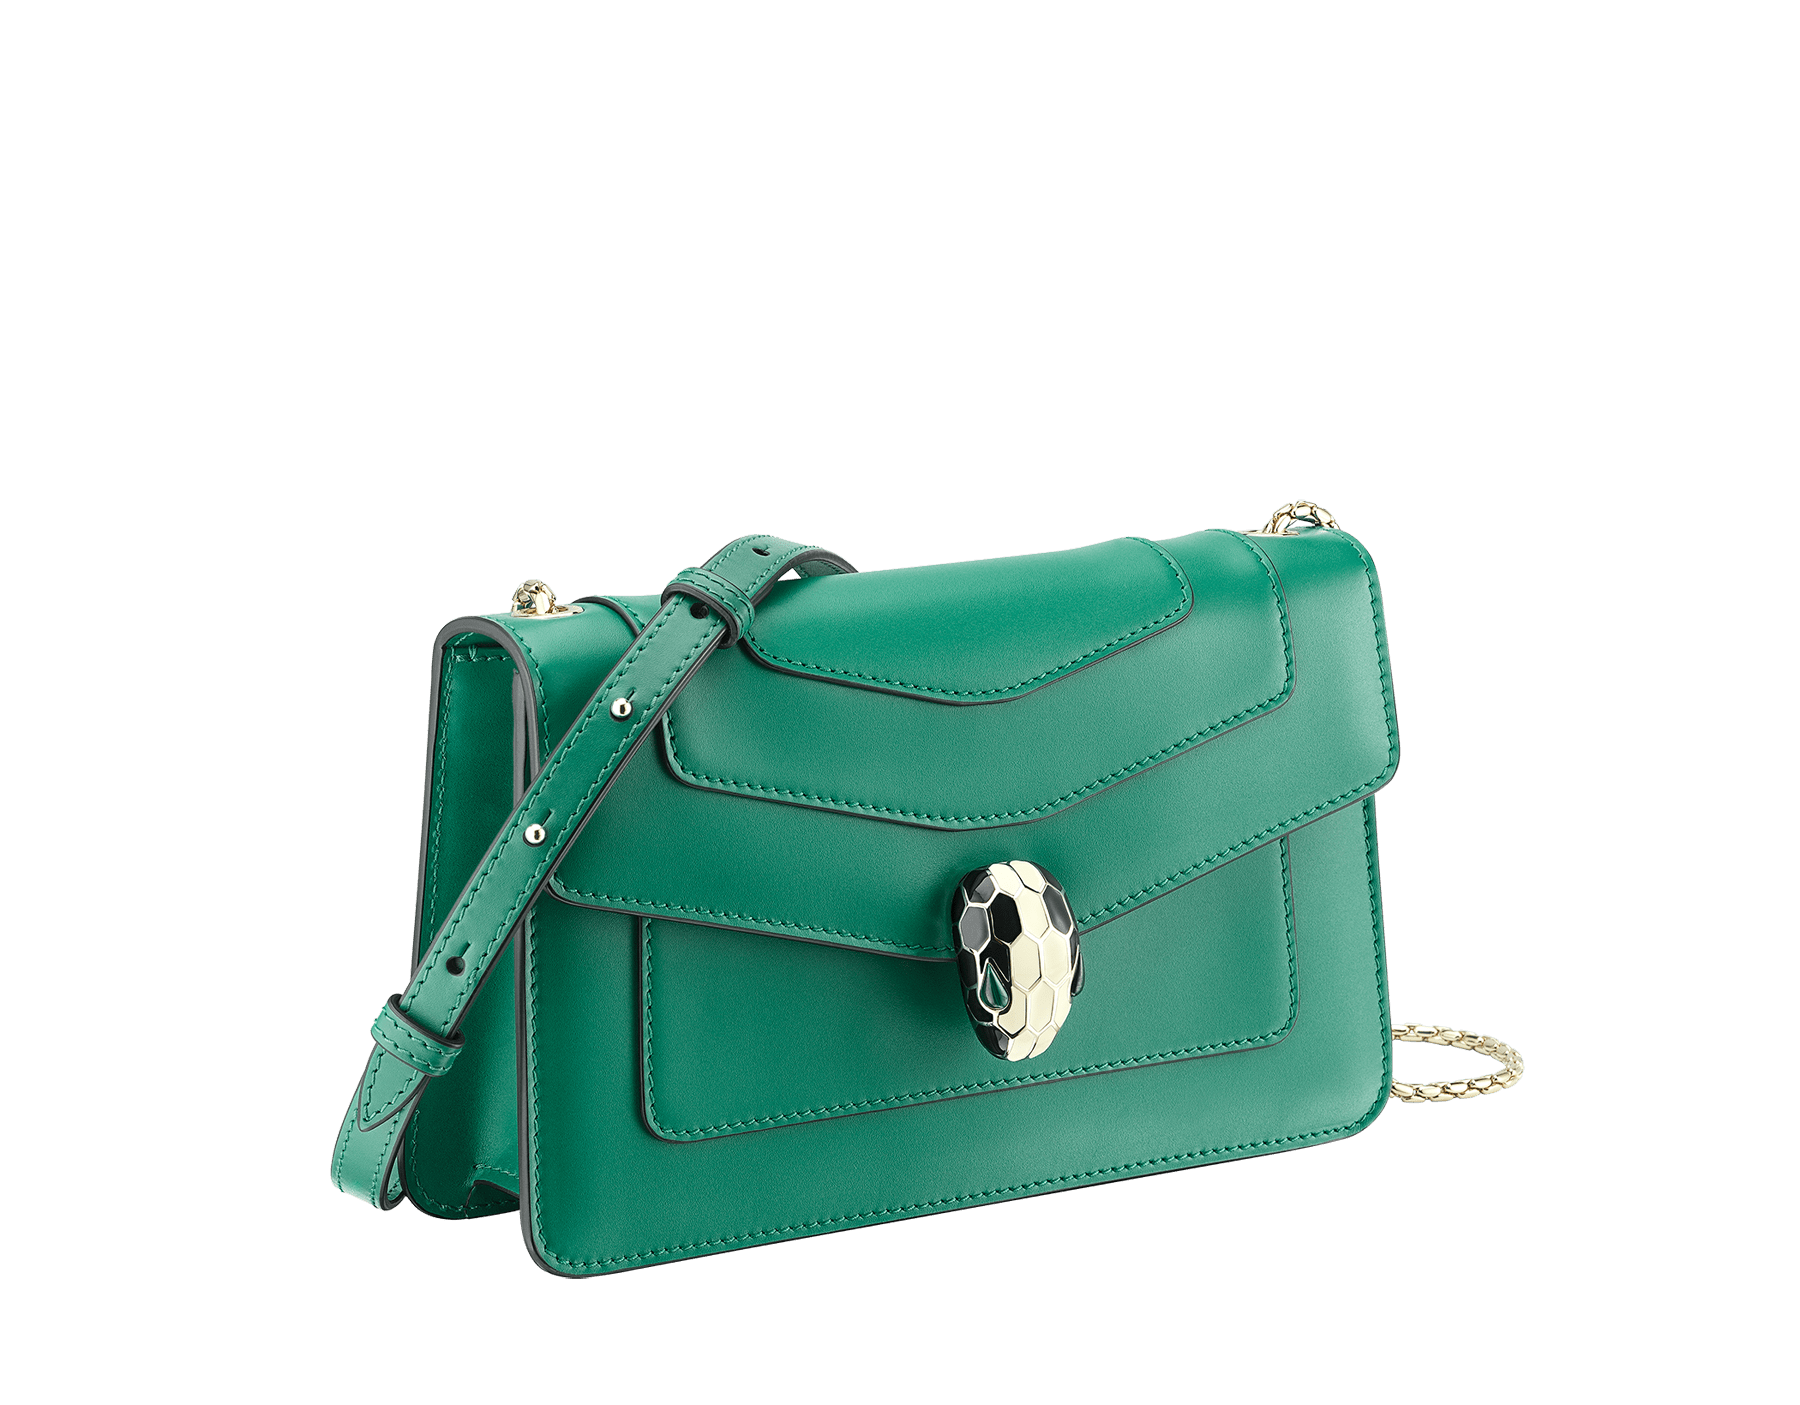 Shoulder bag in Serpenti Forever emerald green calf leather with brass light gold plated Serpenti head closure in black and white enamel with eyes in malachite. 38065 image 2